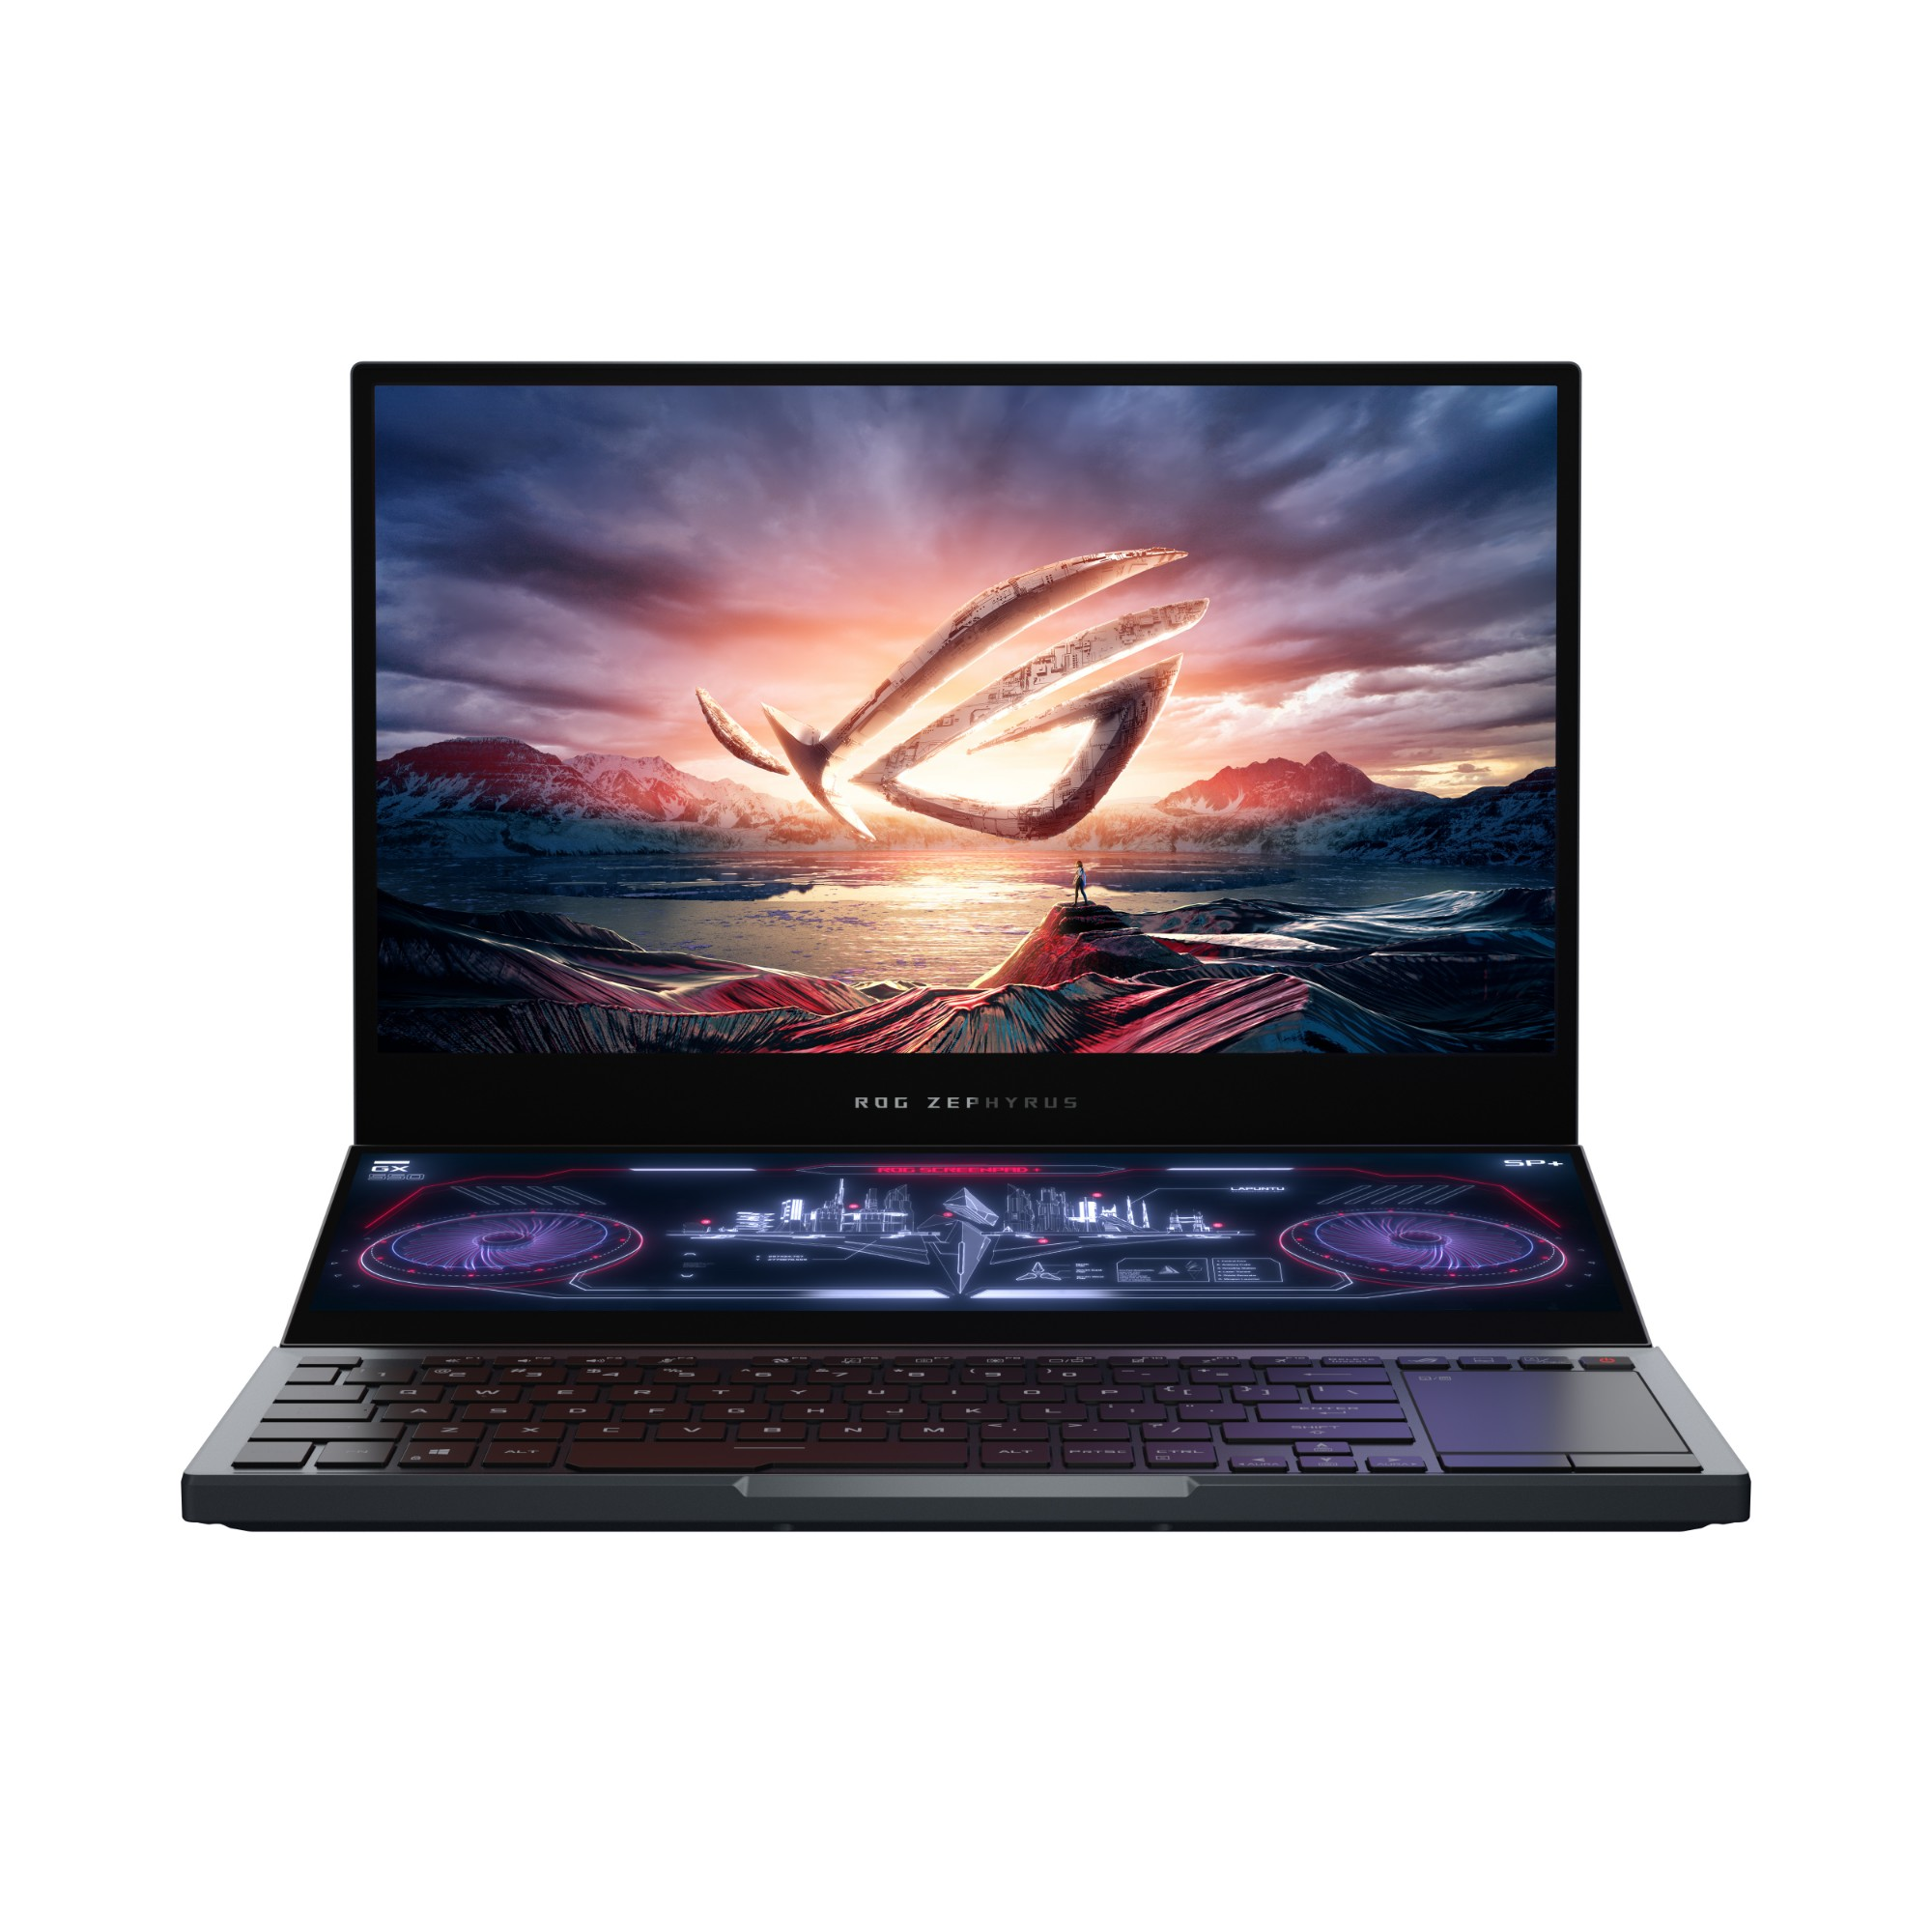 "ASUS ROG Zephyrus Duo GX550LXS-HC029R notebook Black, Grey 39.6 cm (15.6"") 3840 x 2160 pixels 10th gen Intel® Core™ i9 32 GB DDR4-SDRAM 2000 GB SSD NVIDIA GeForce RTX 2080 SUPER Wi-Fi 6 (802.11ax) Windows 10 Pro"